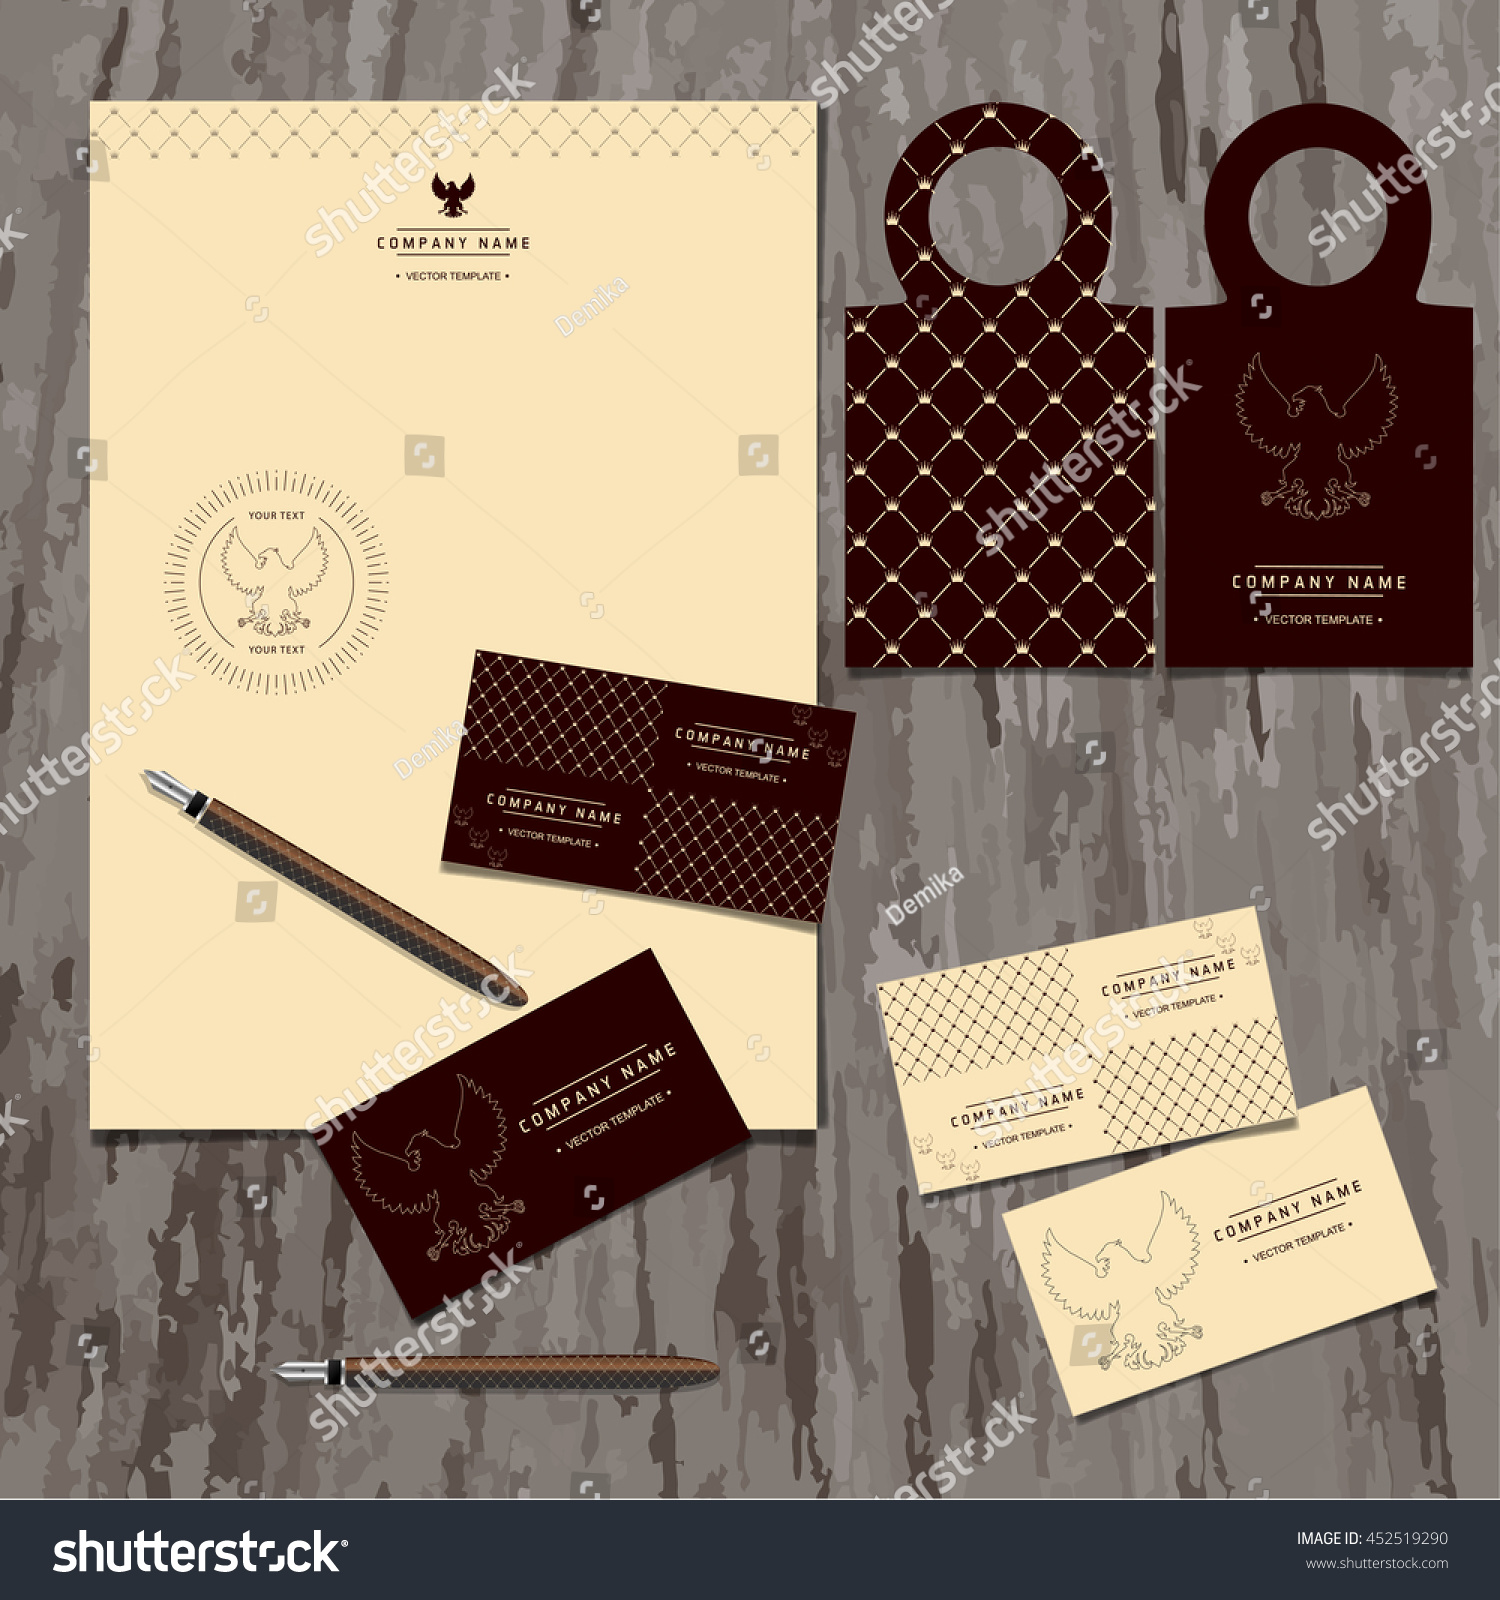 Book business cards gallery free business cards business cards book images free business cards book business cards image collections free business cards brand magicingreecefo Choice Image